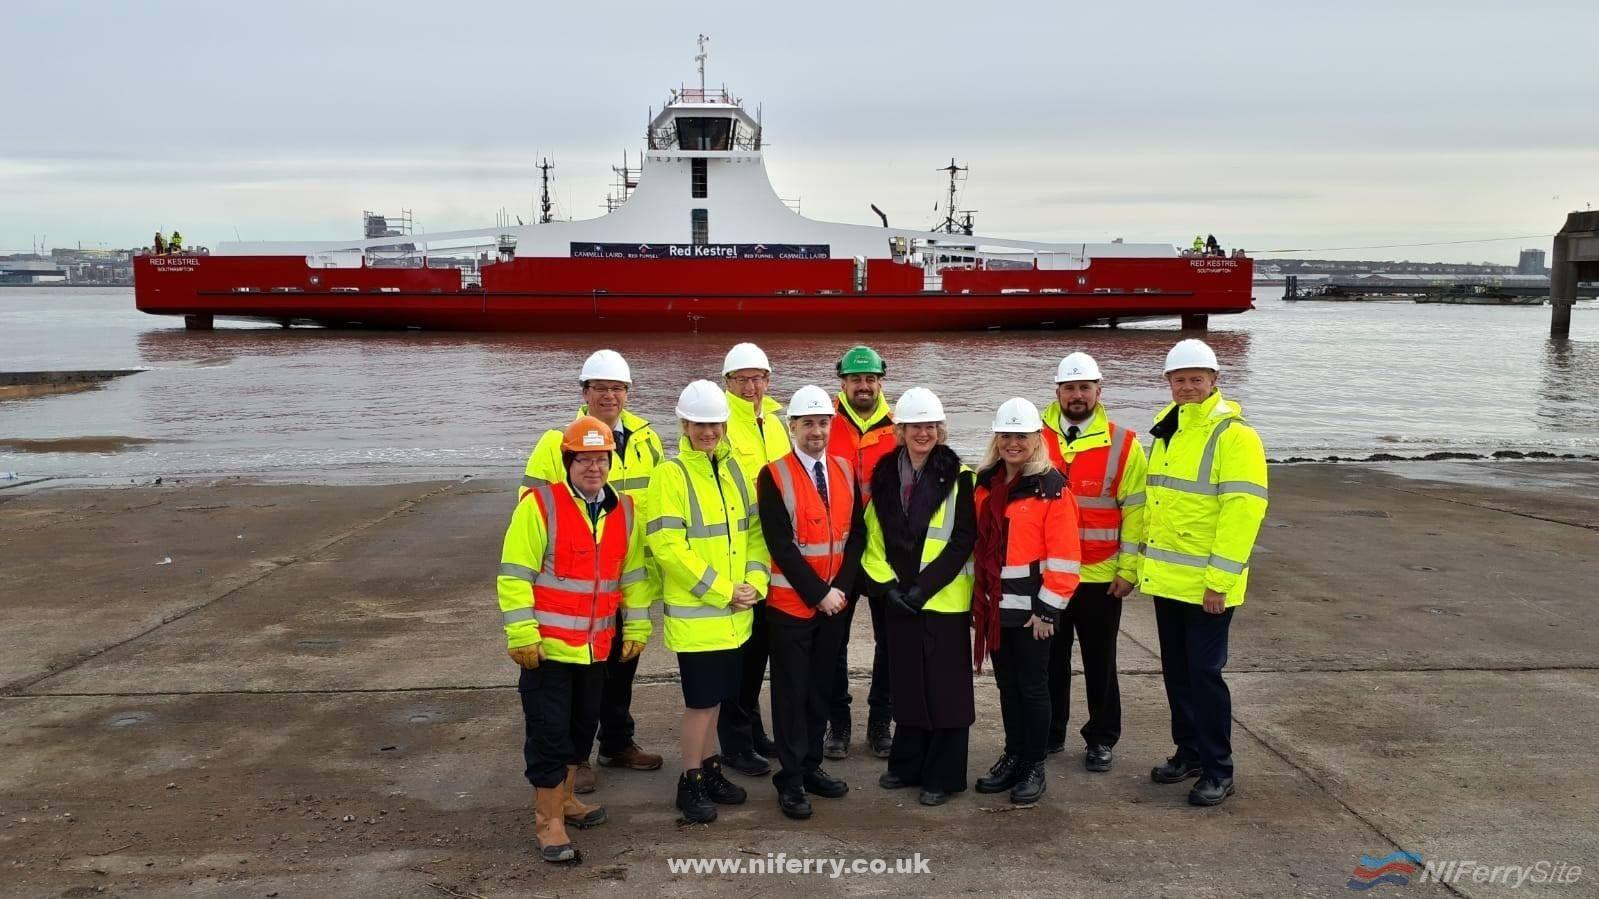 Photo of [PR] Cammell Laird stages 'float-off' for new £10m ferry for Red Funnel